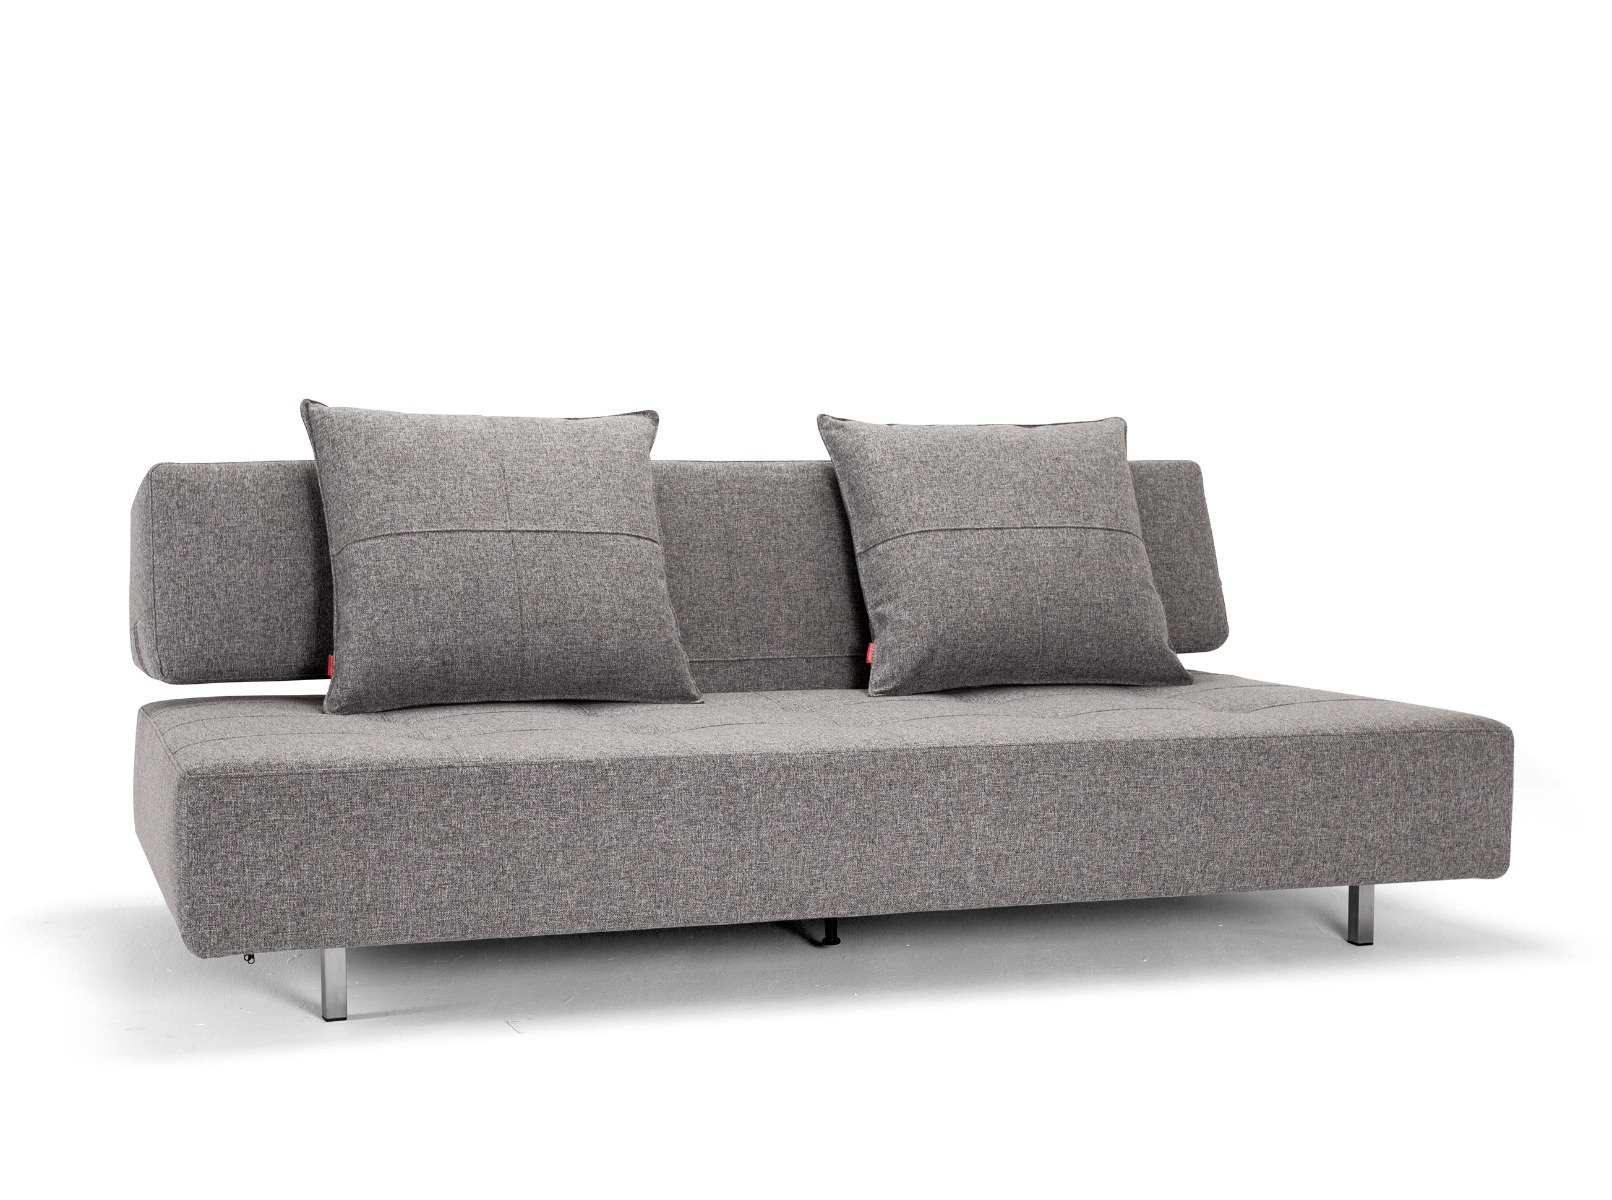 Long Horn - Twist Granite Sovesofa 140x200